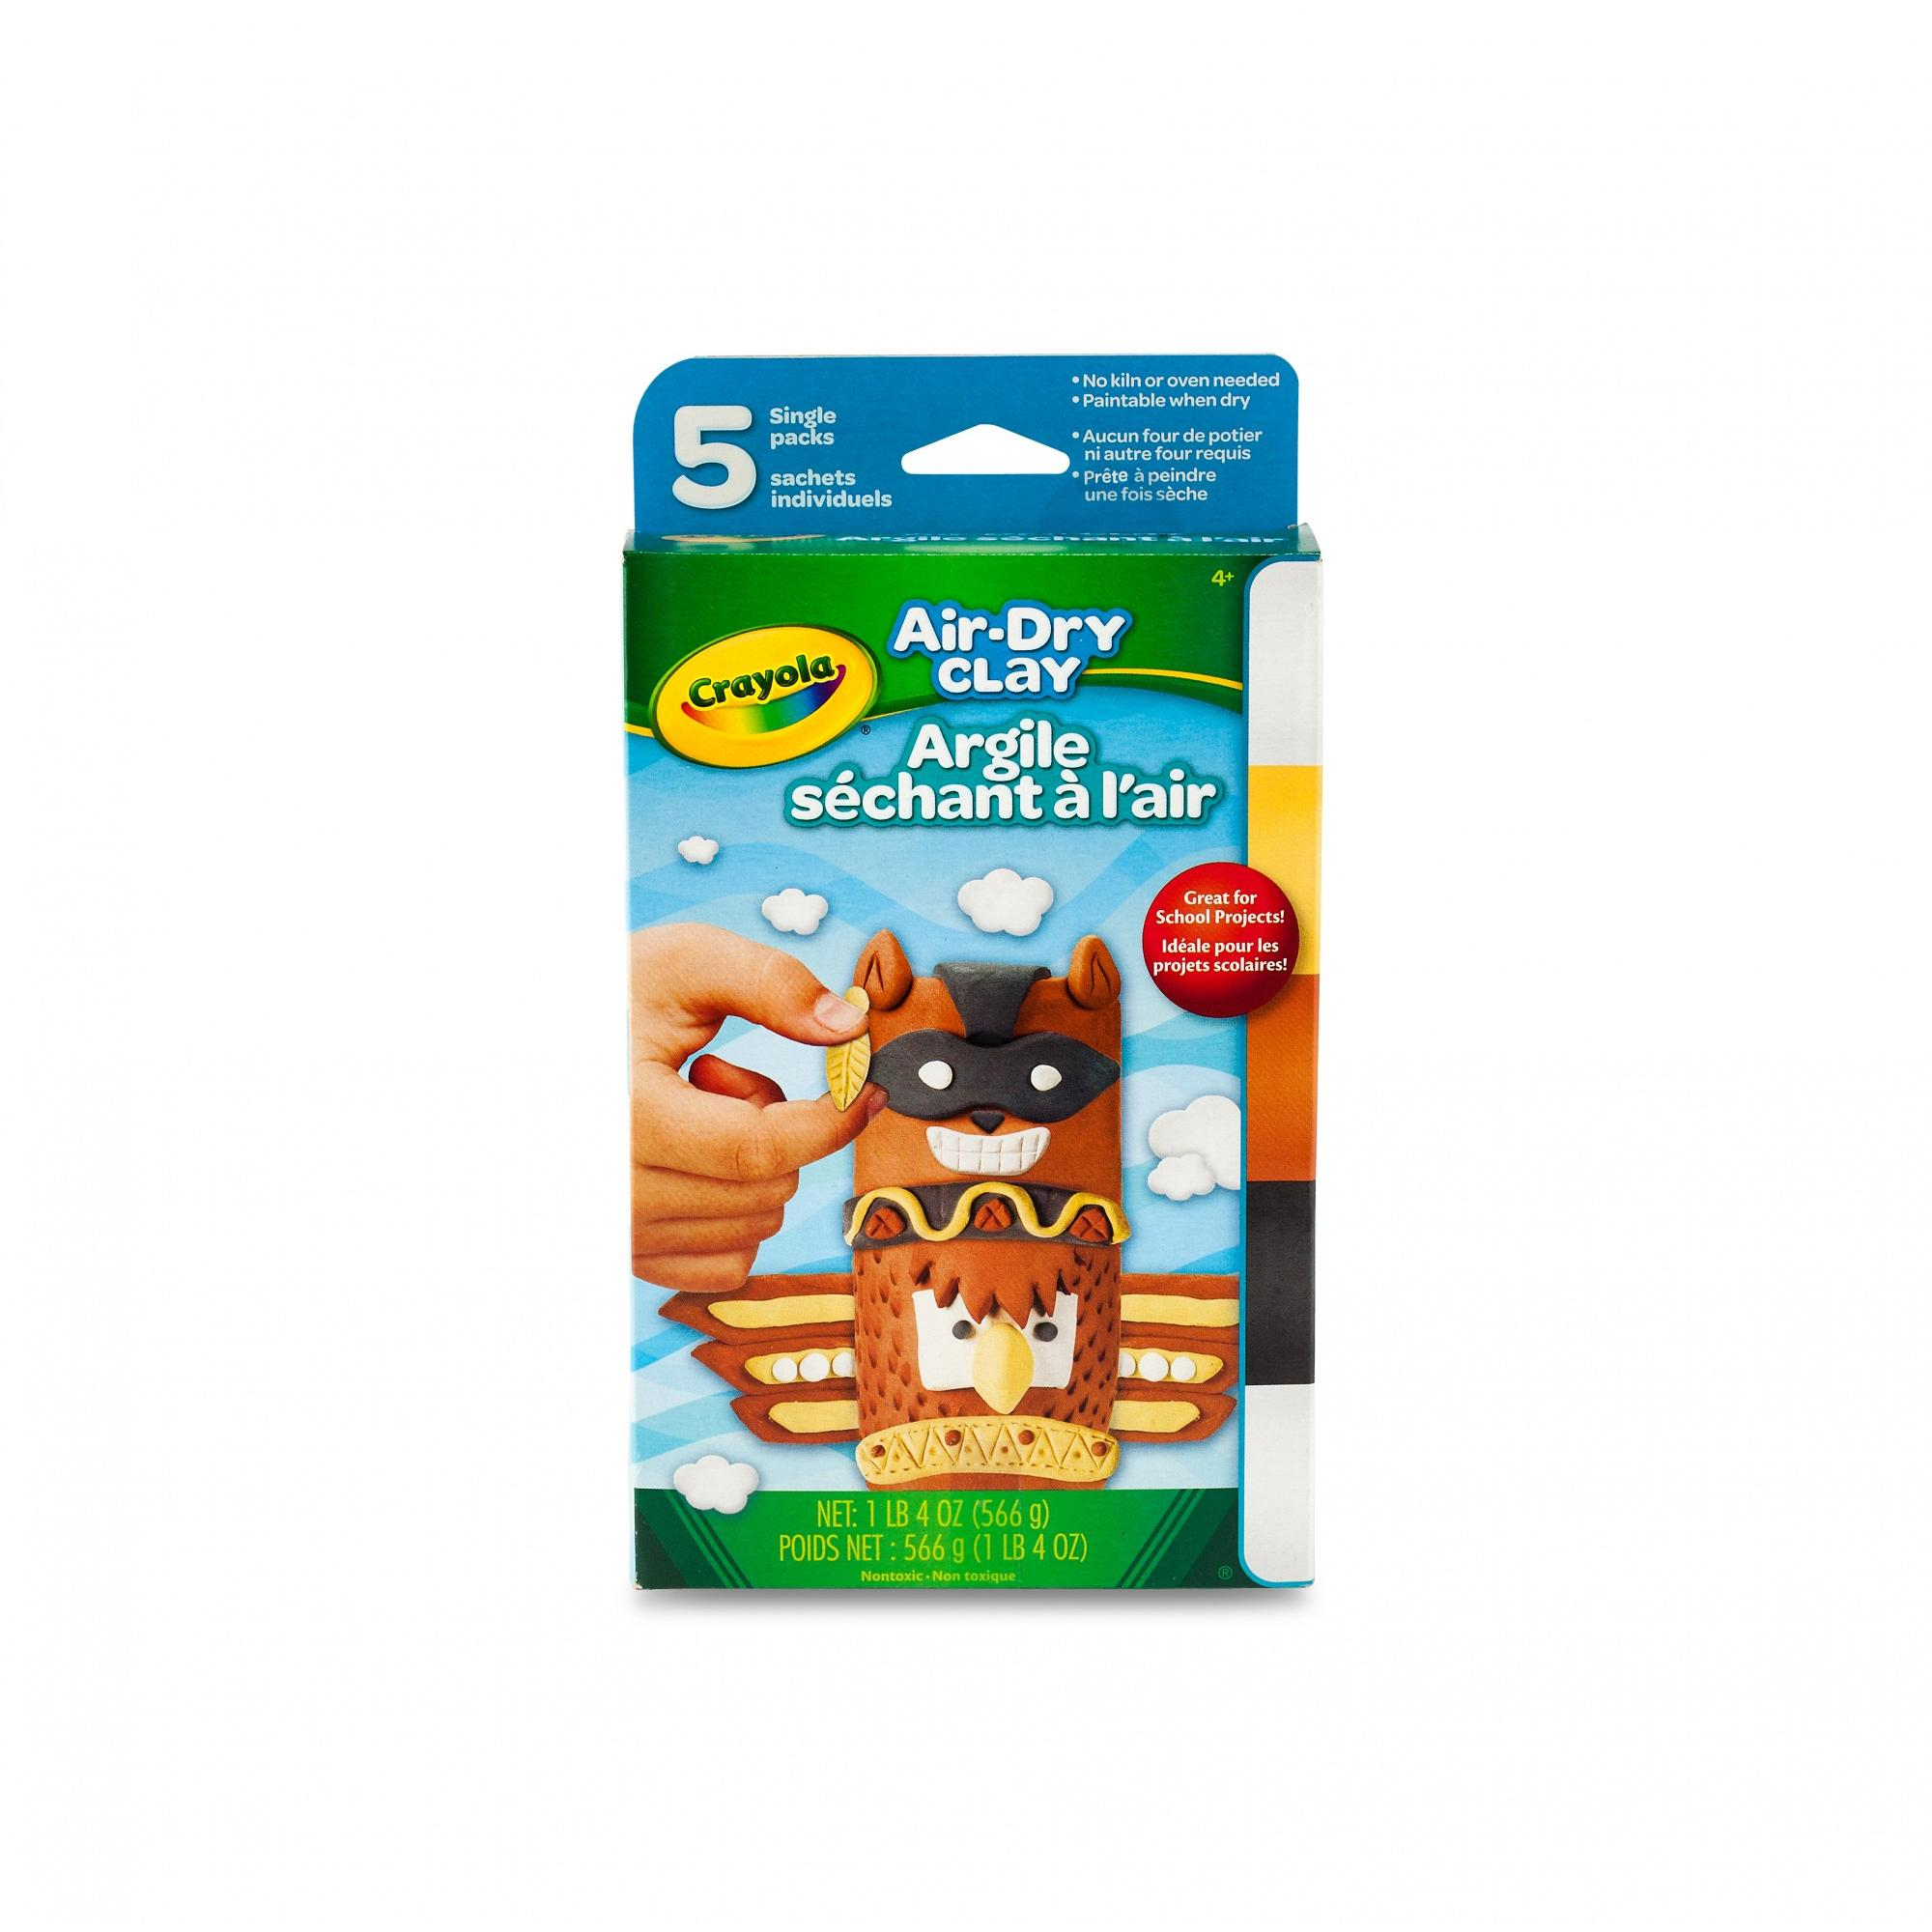 Crayola Air-Dry Clay Neutral Colors Variety Pack, 4 Colors